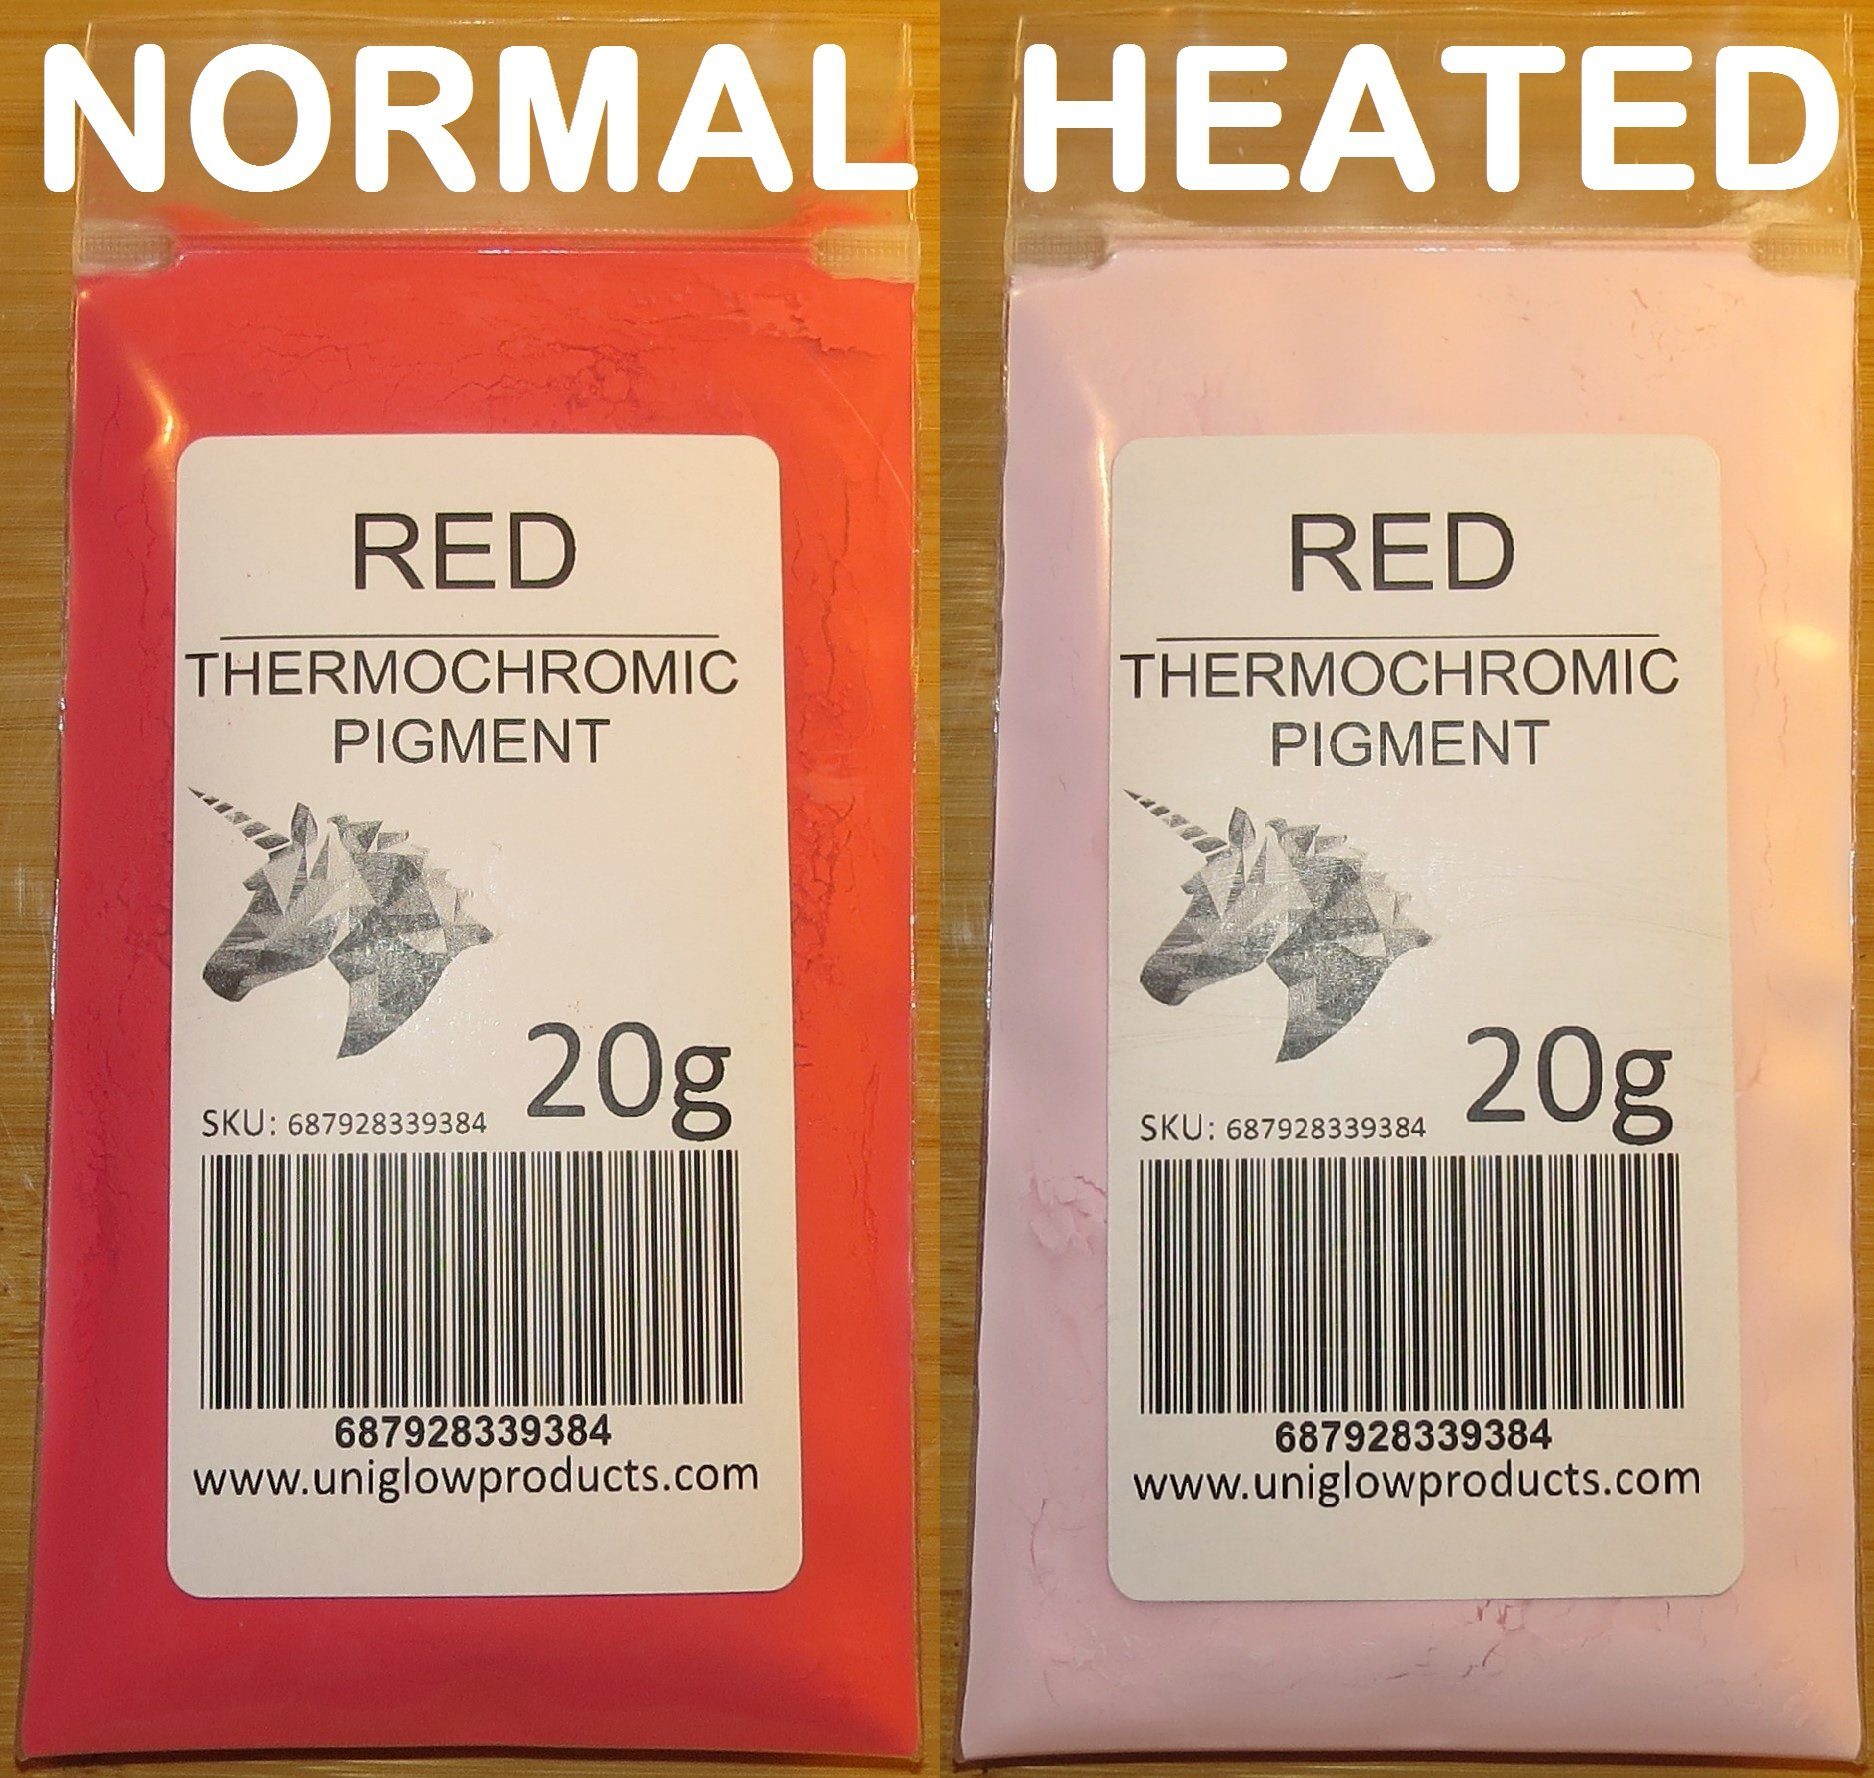 VIOLET 2g of Thermochromic Temperature Activated Pigment